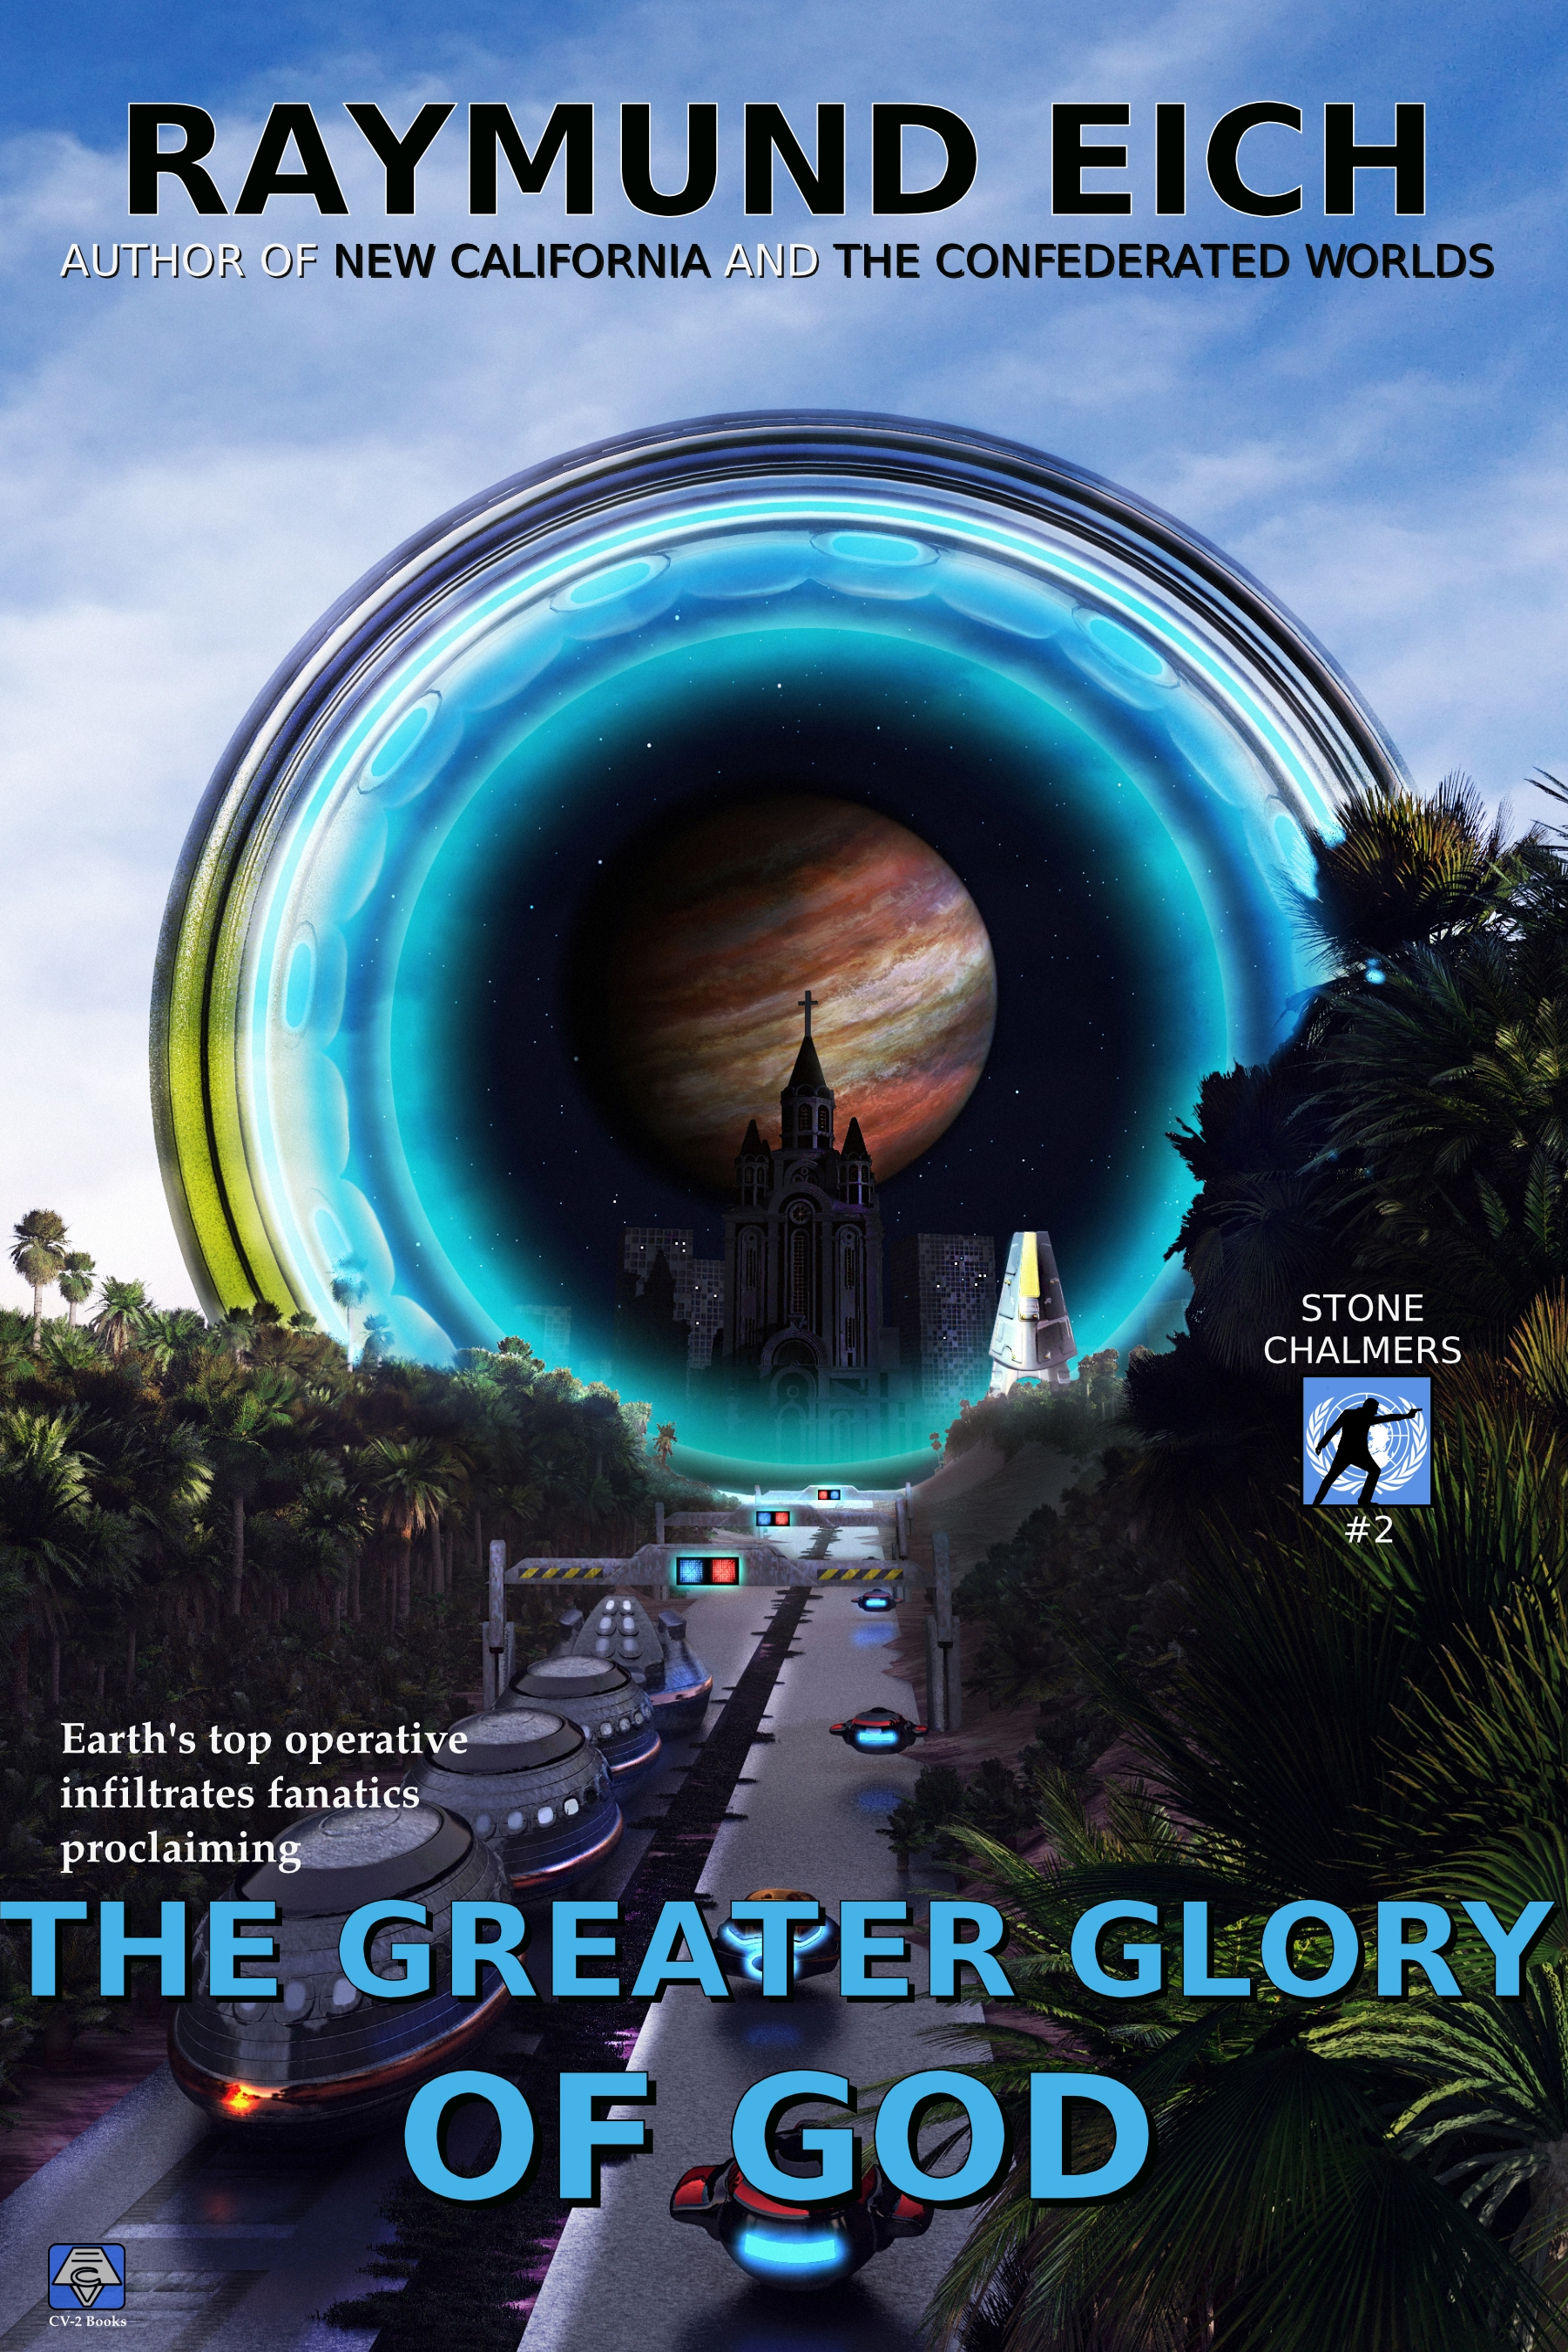 The Greater Glory of God (Stone Chalmers Book 2)